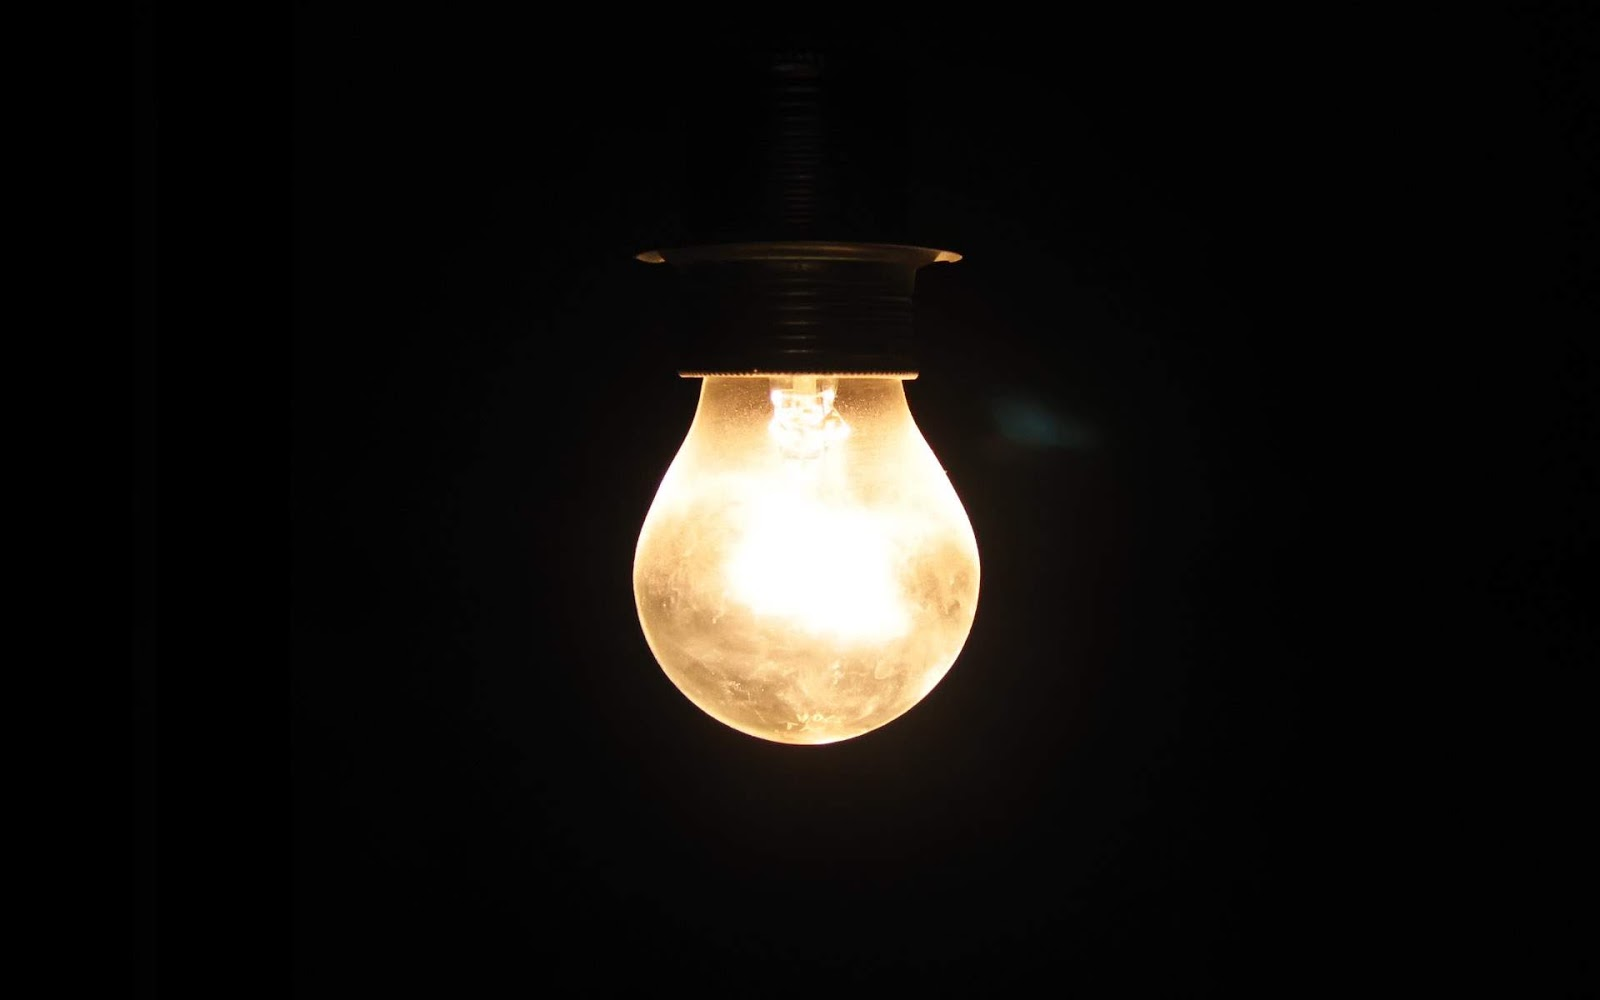 Free Download Black And White Wallpapers Electric Bulb Lamp On Images, Photos, Reviews